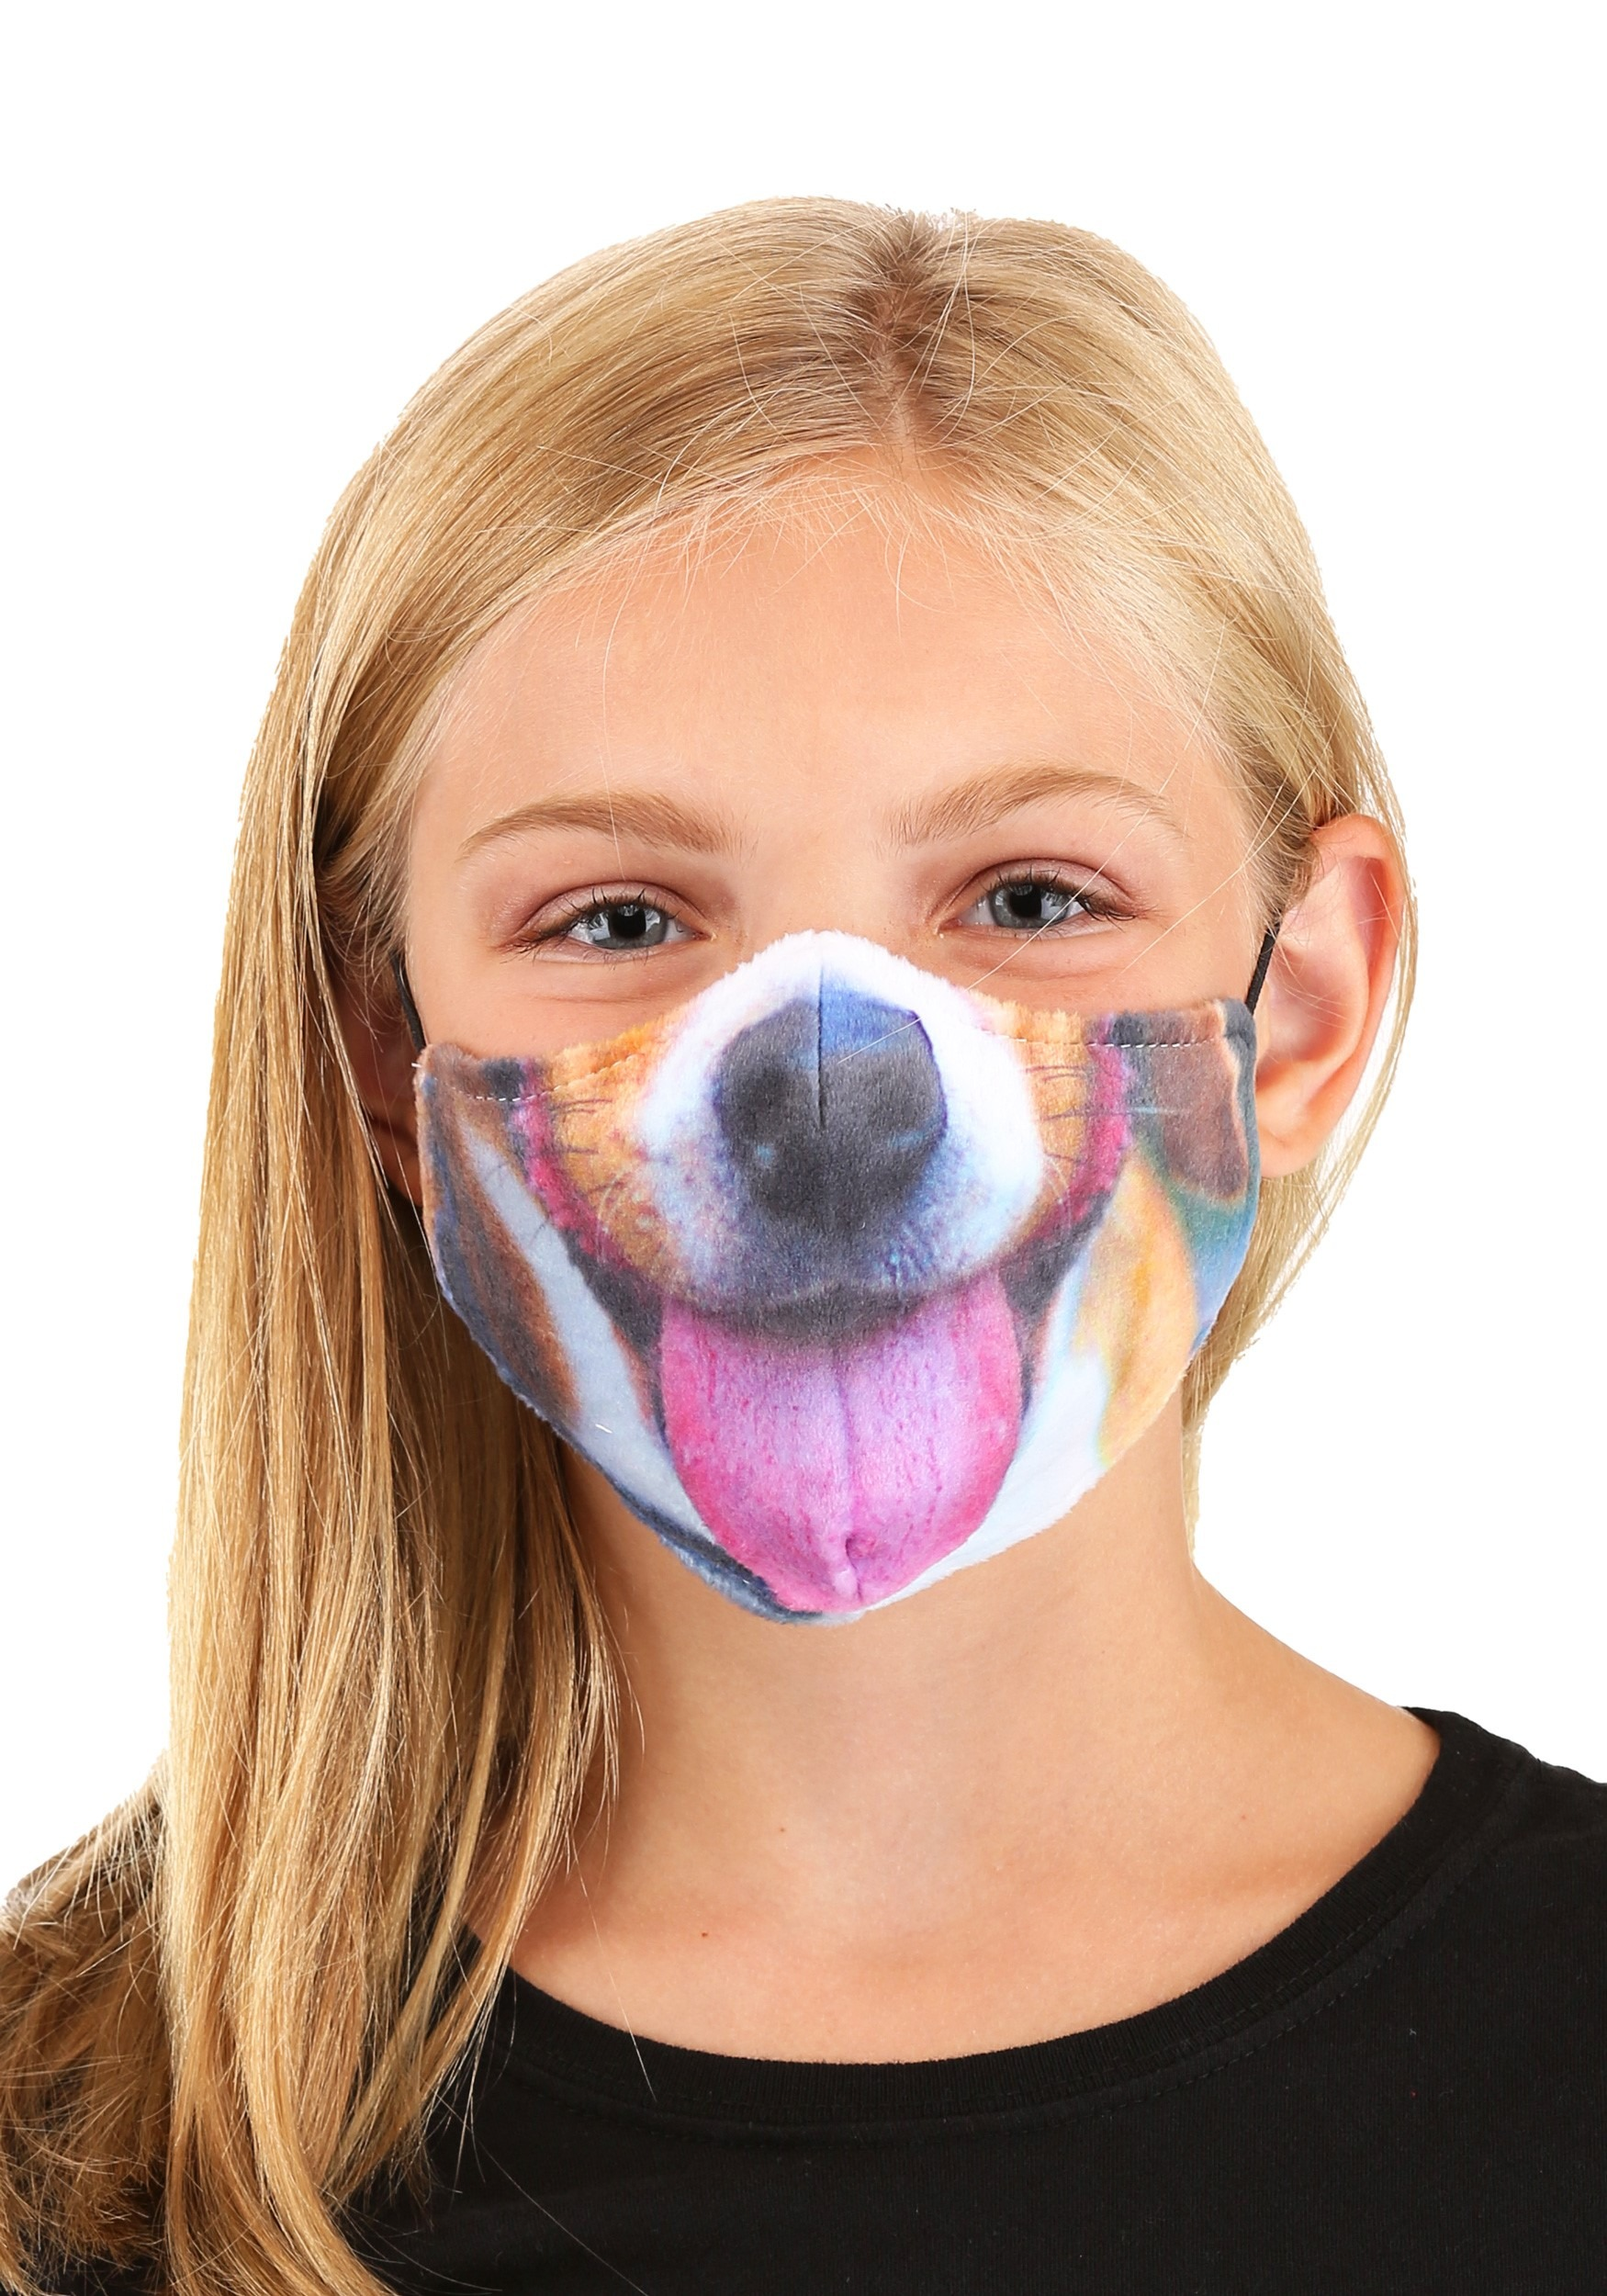 Dog with Tongue Sublimated Face Mask for Kids